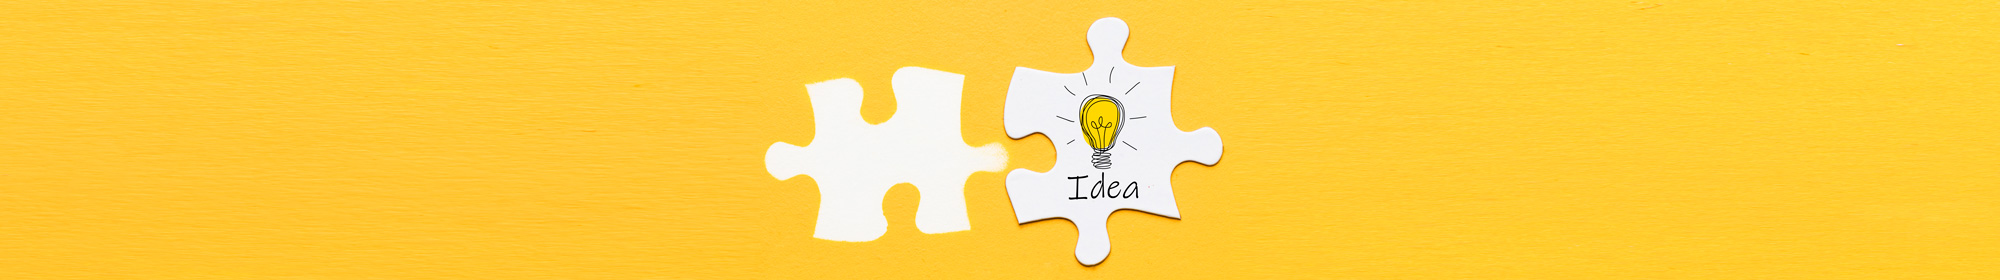 two wite puzzle pieces with an idea light bulb on yellow background